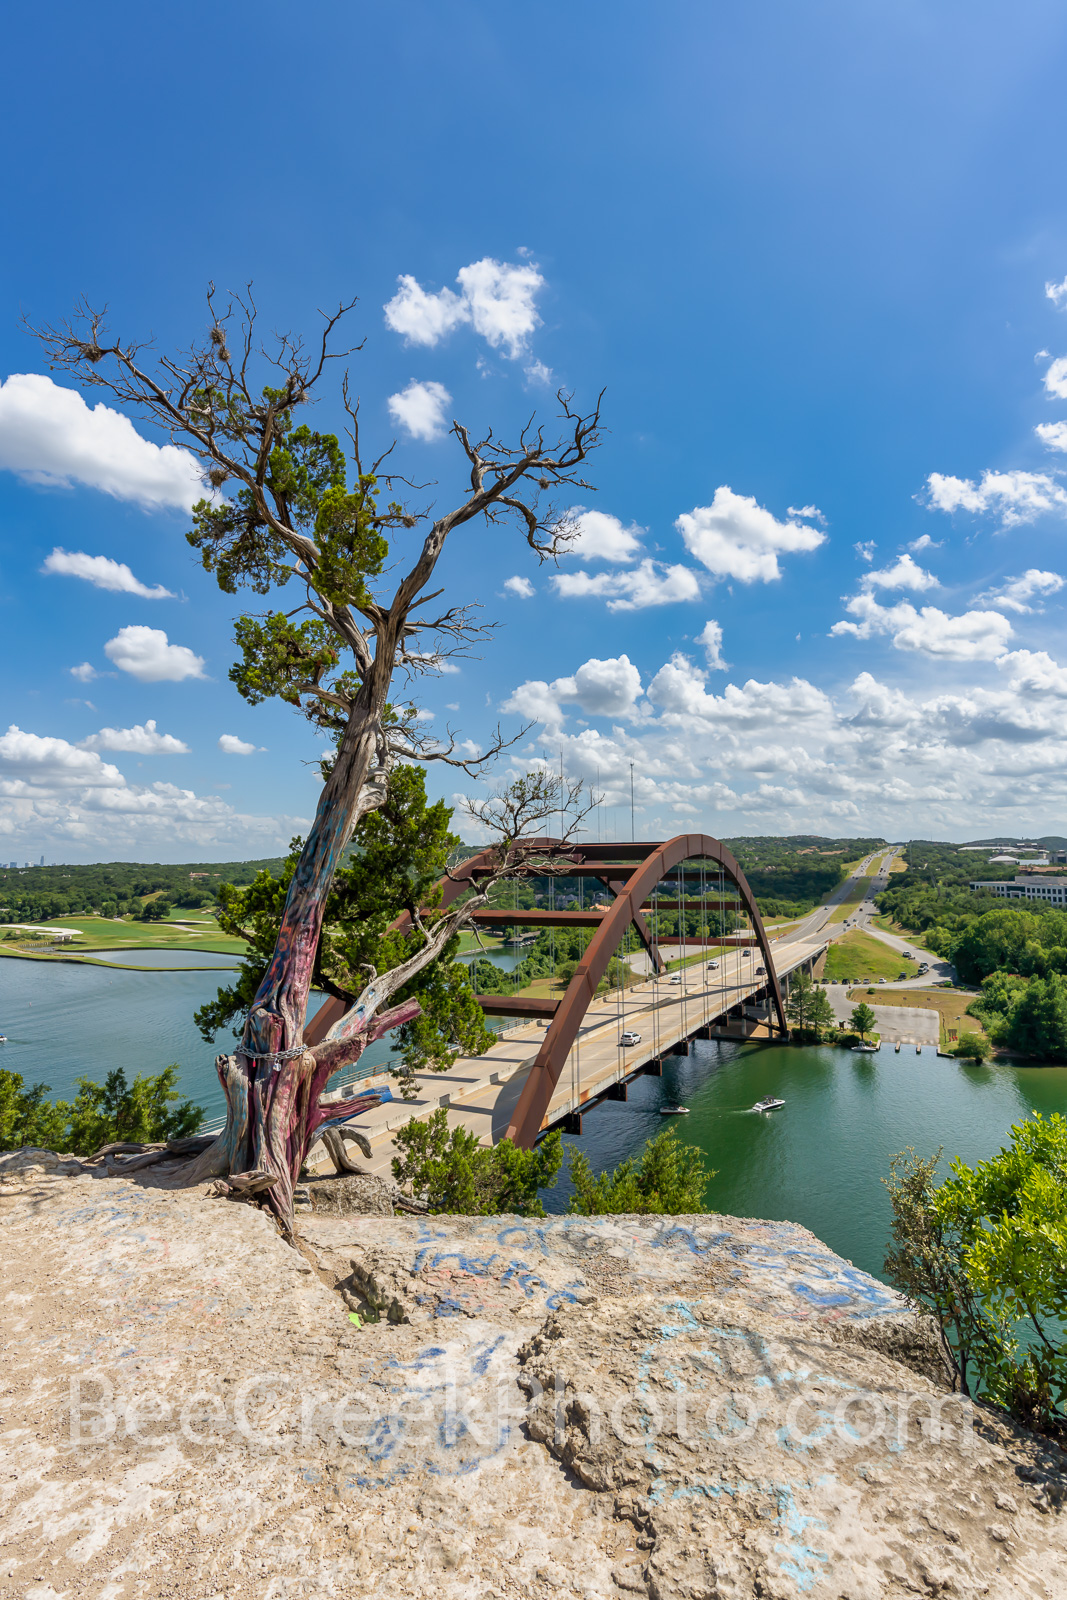 Austin Pennybacker Overlook, Vertical, Austin 360 bridge, Austin Pennybacker Bridge, austin texas, texas hill country, lake austin, colorado river, hwy 360, capitol of Texas hwy., photo